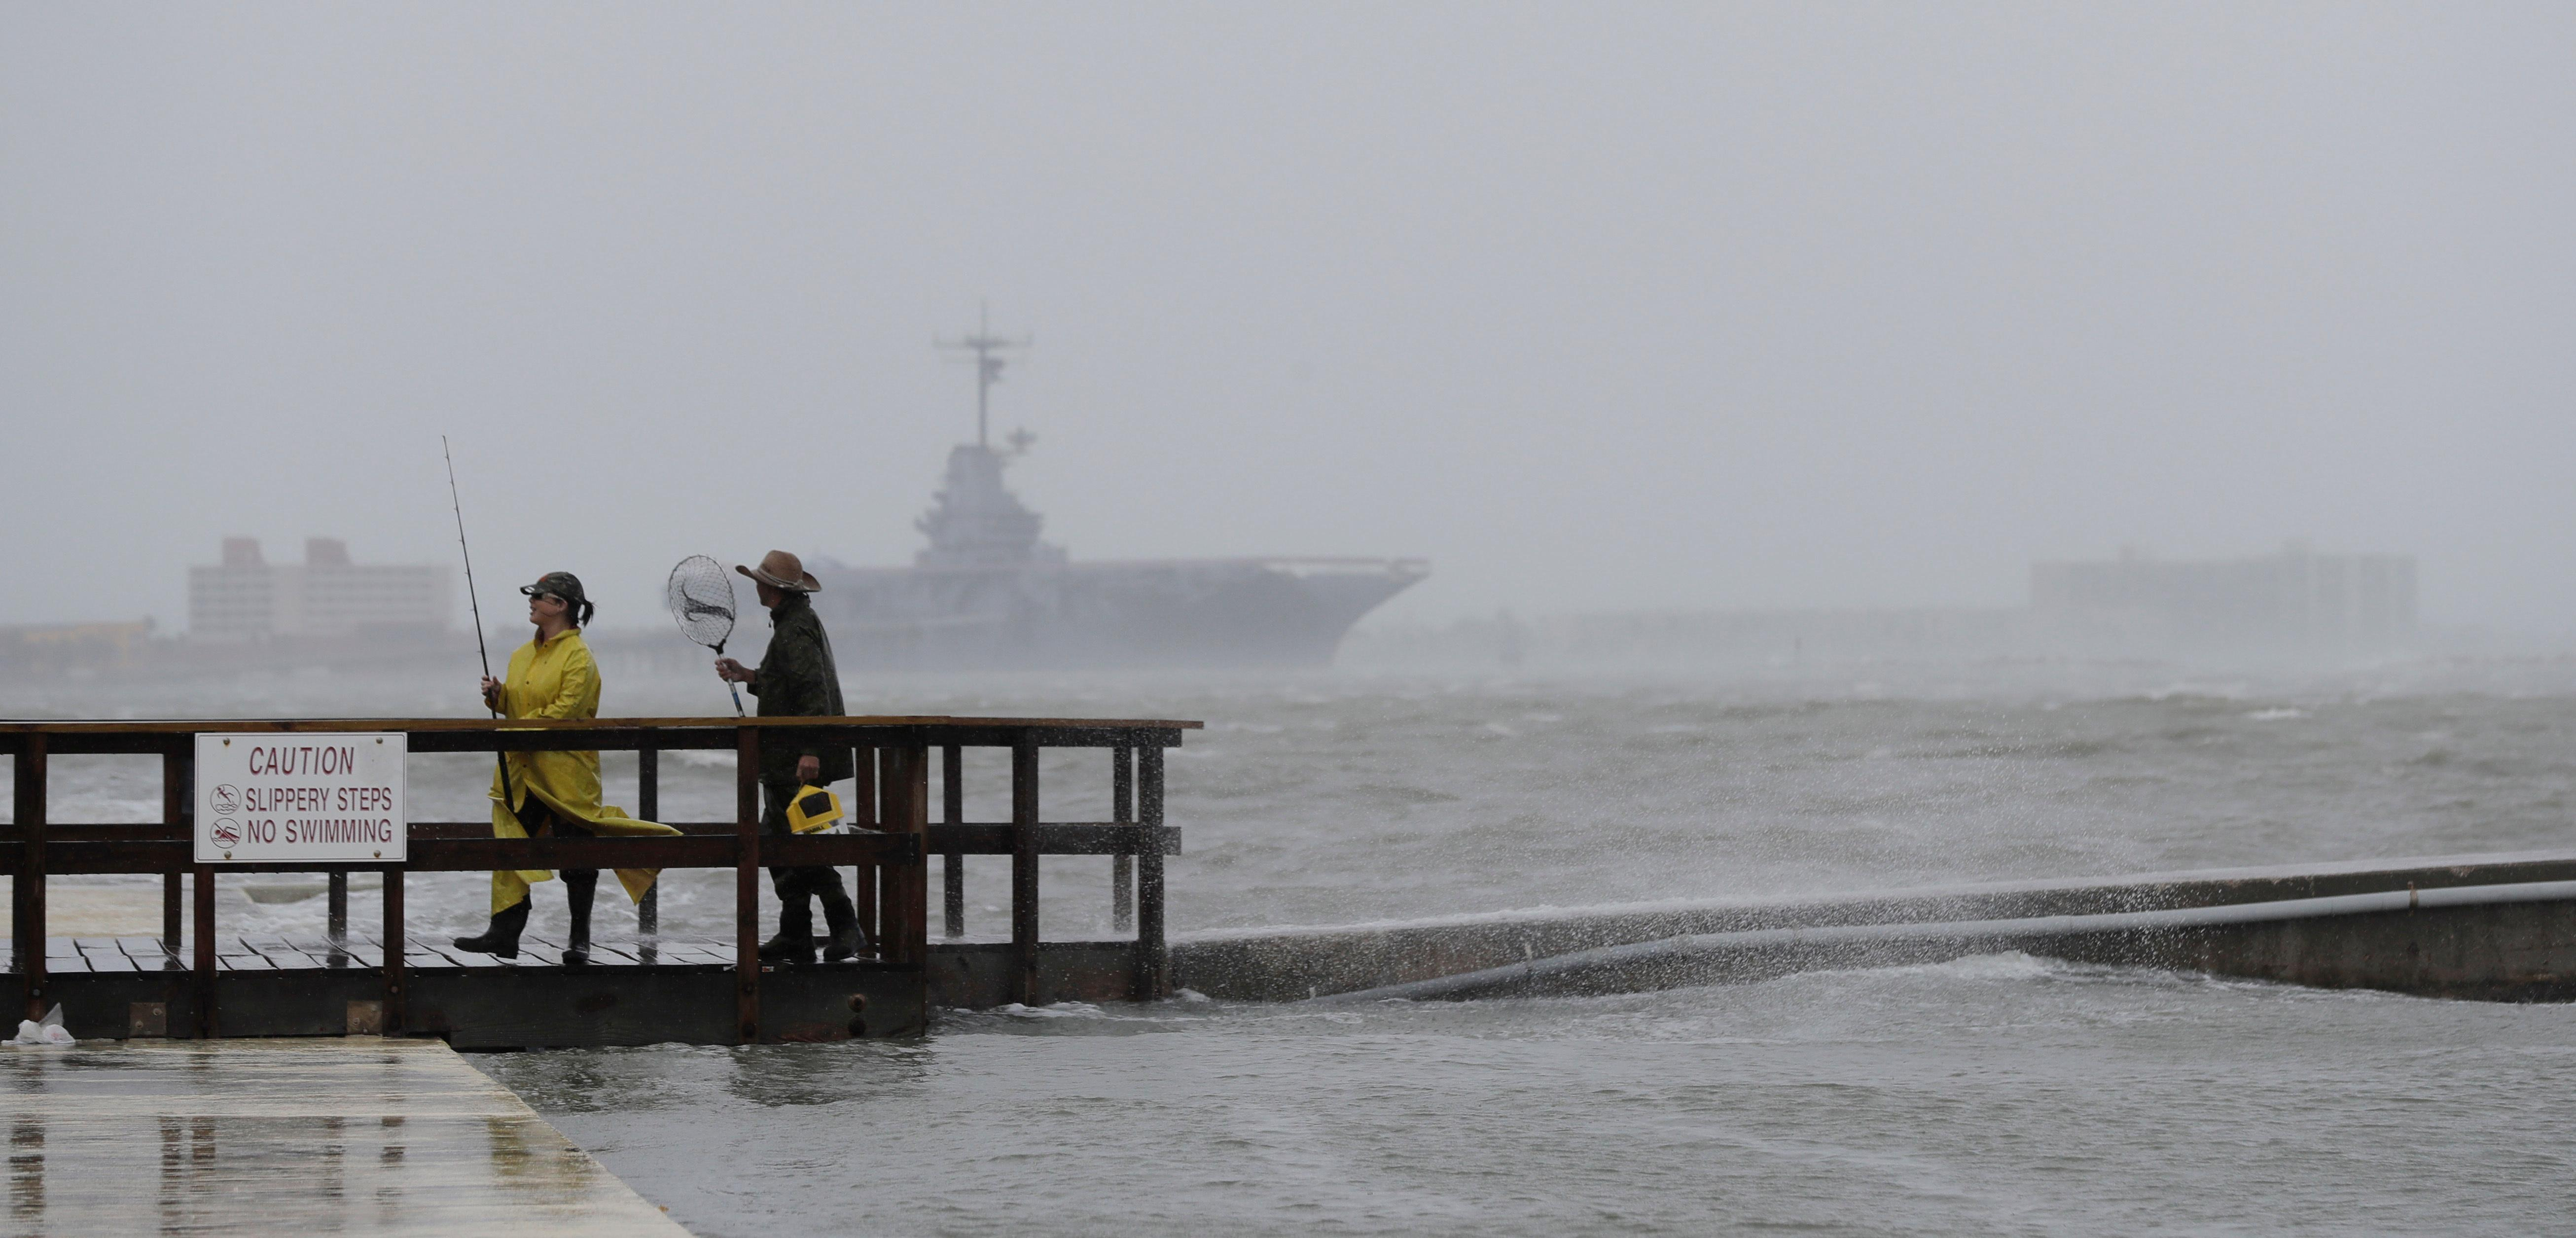 Fishermen walk along a pier as the early bands of Hurricane Harvey make landfall, Friday, Aug. 25, 2017, in Corpus Christi, Texas. Harvey intensified into a hurricane Thursday and steered for the Texas coast with the potential for up to 3 feet of rain, 125 mph winds and 12-foot storm surges in what could be the fiercest hurricane to hit the United States in almost a dozen years.(AP Photo/Eric Gay)